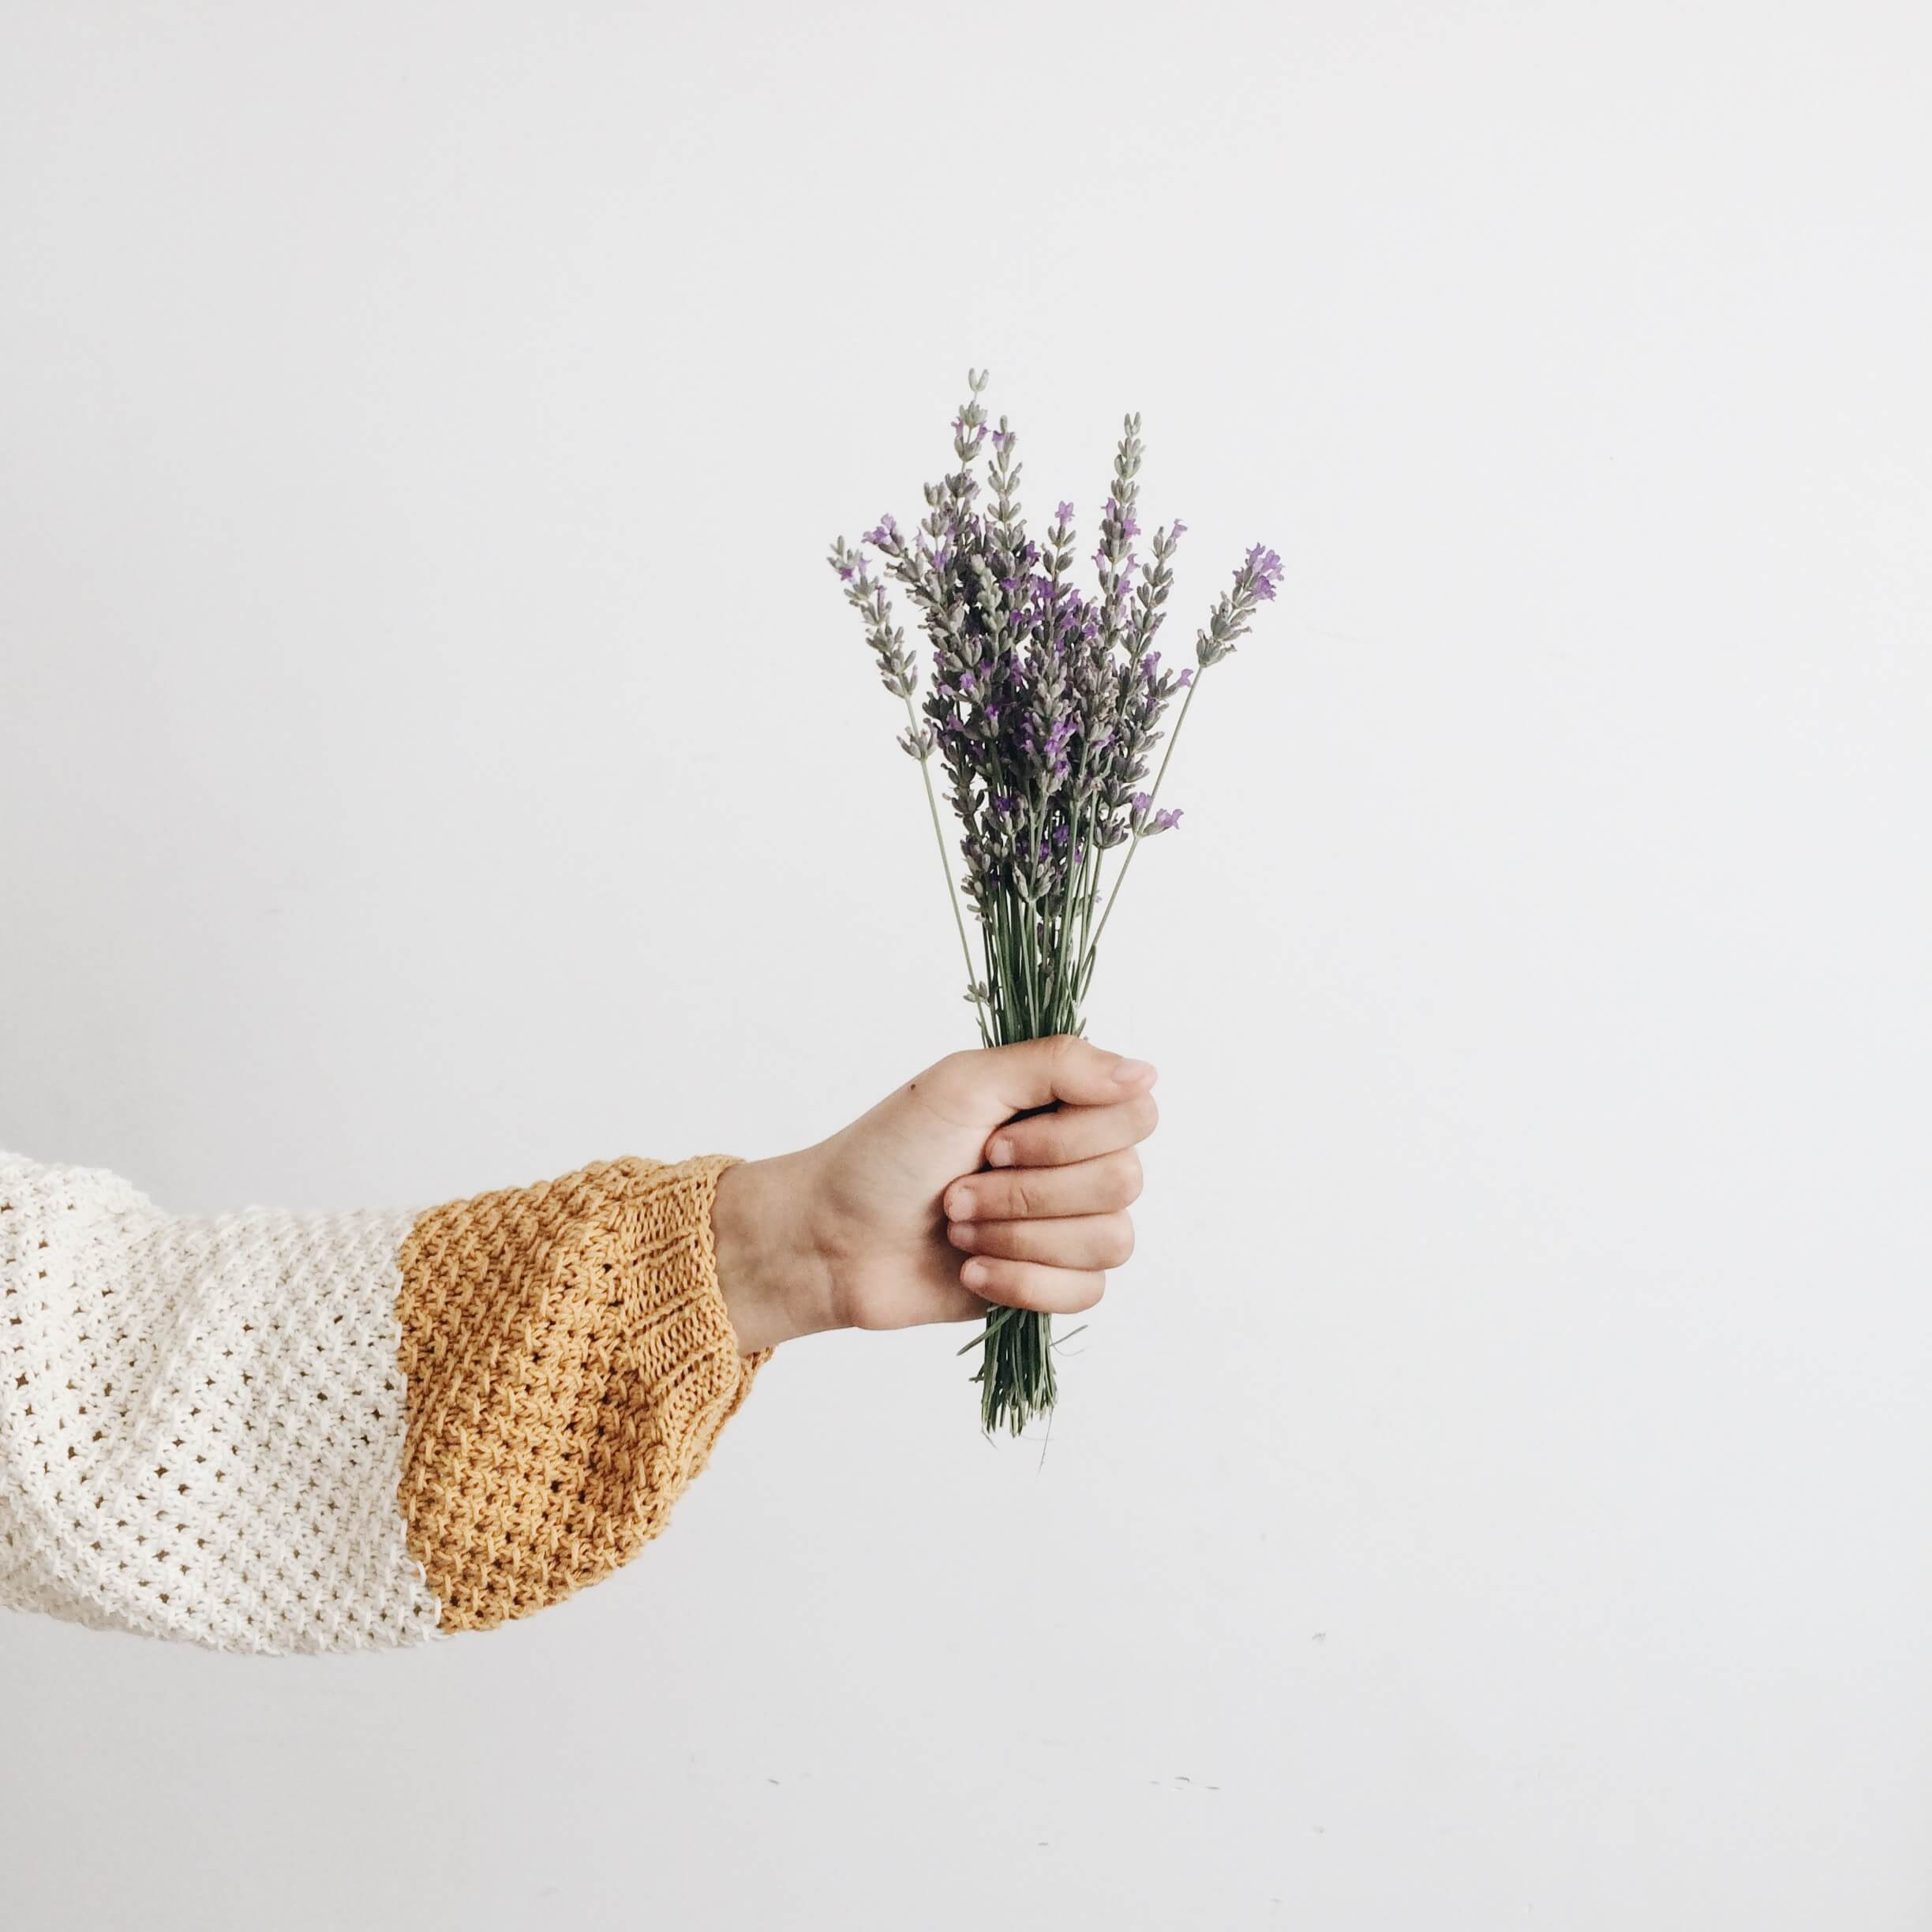 Natural Medicine Blogs -by Emalyse the Naturopath